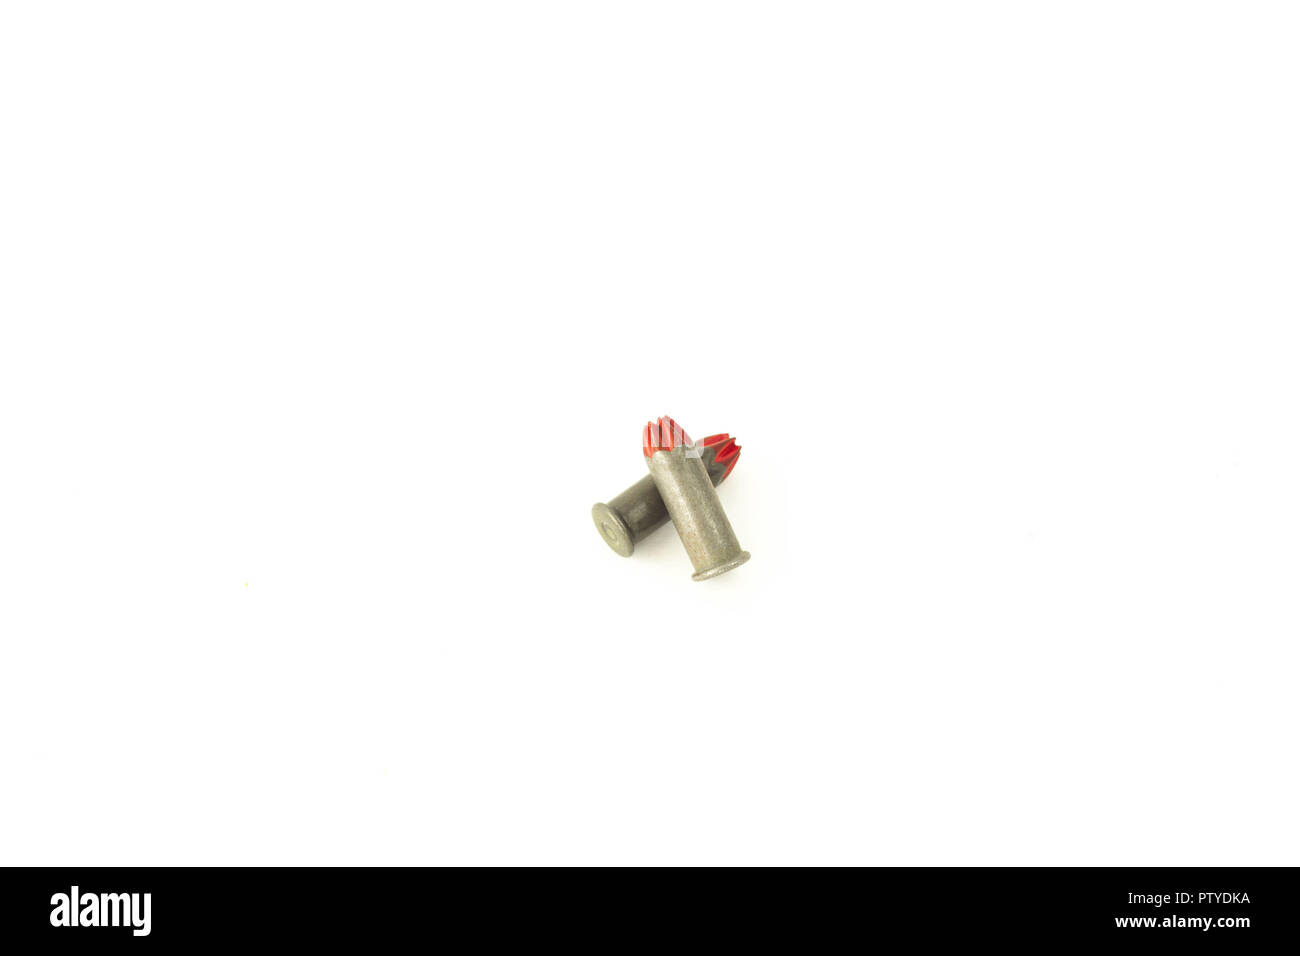 Mounting construction cartridges for building gun, isolate, patron - Stock Image